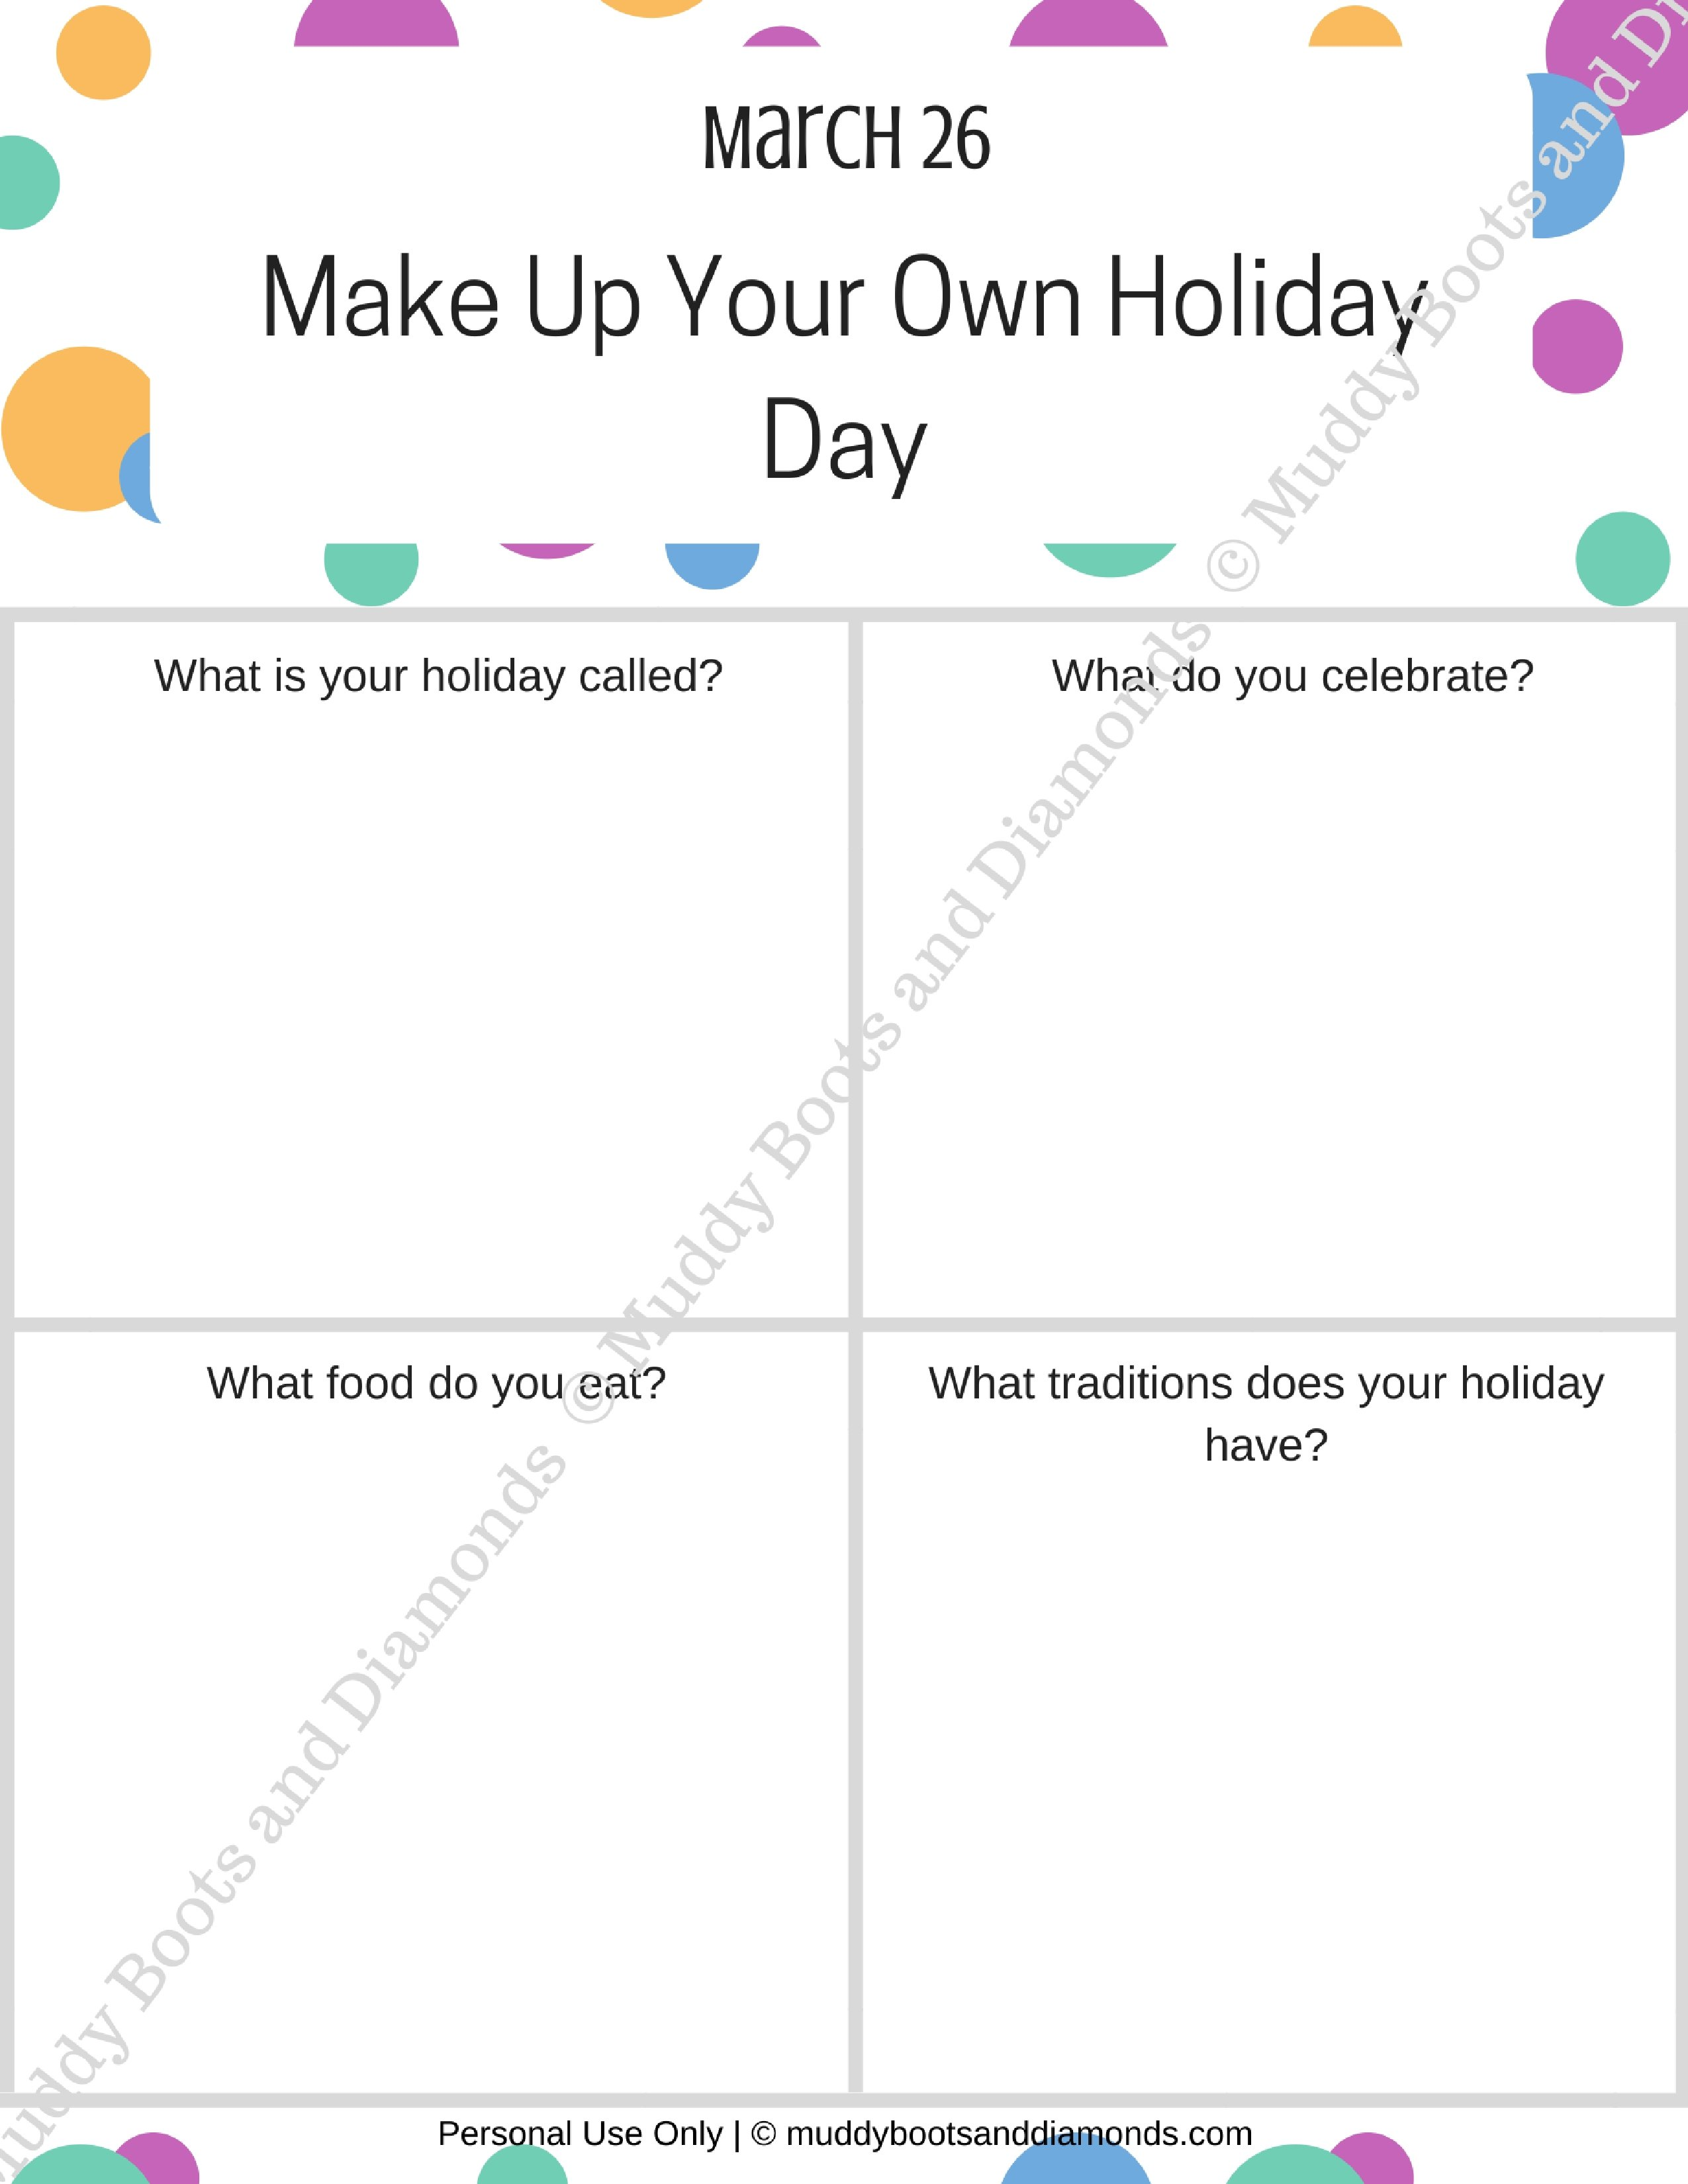 Worksheets Make Your Own Worksheet make up your own holiday day muddy boots and diamonds worksheet watermarked via muddybootsanddiamonds com